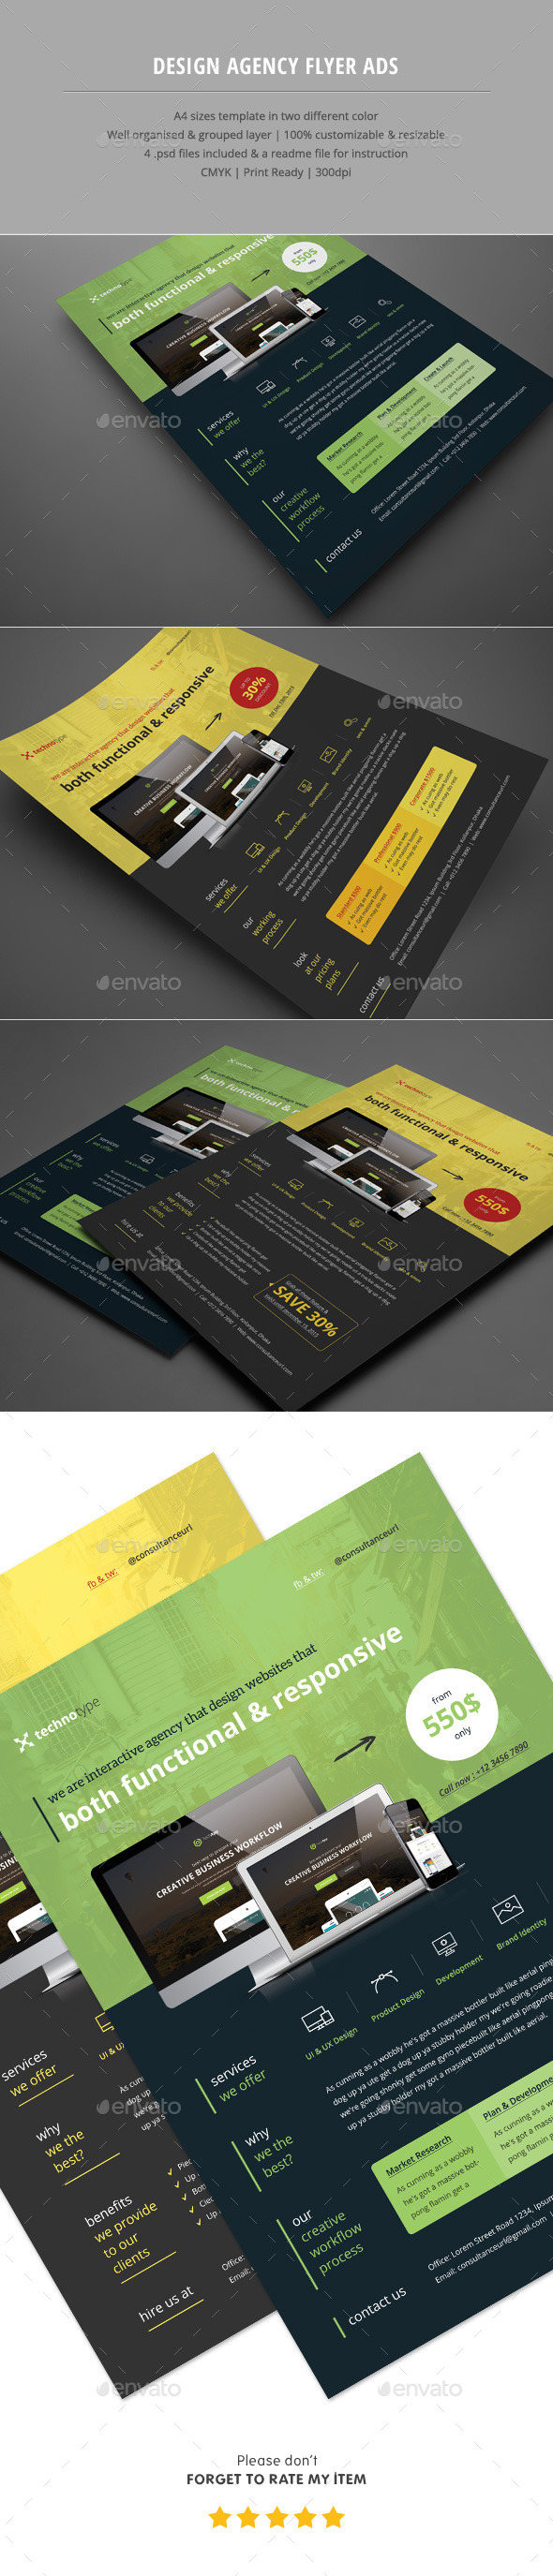 Design Agency Flyer Ads - Corporate Flyers